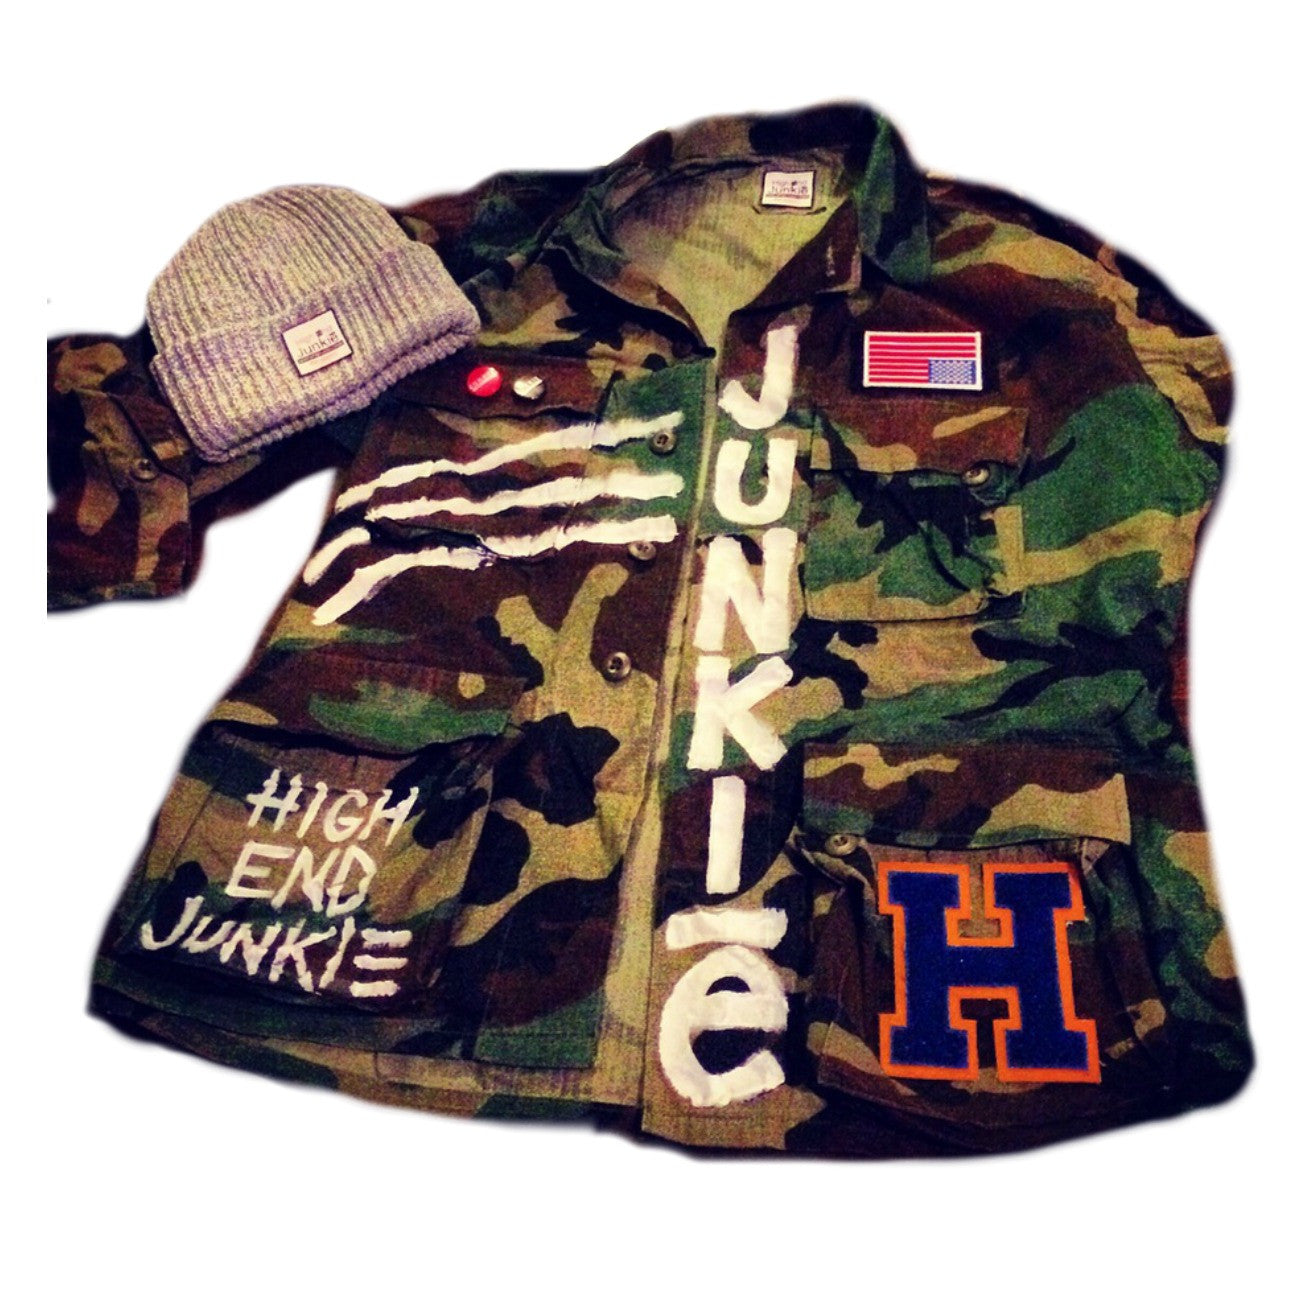 The Brave Camo Jacket